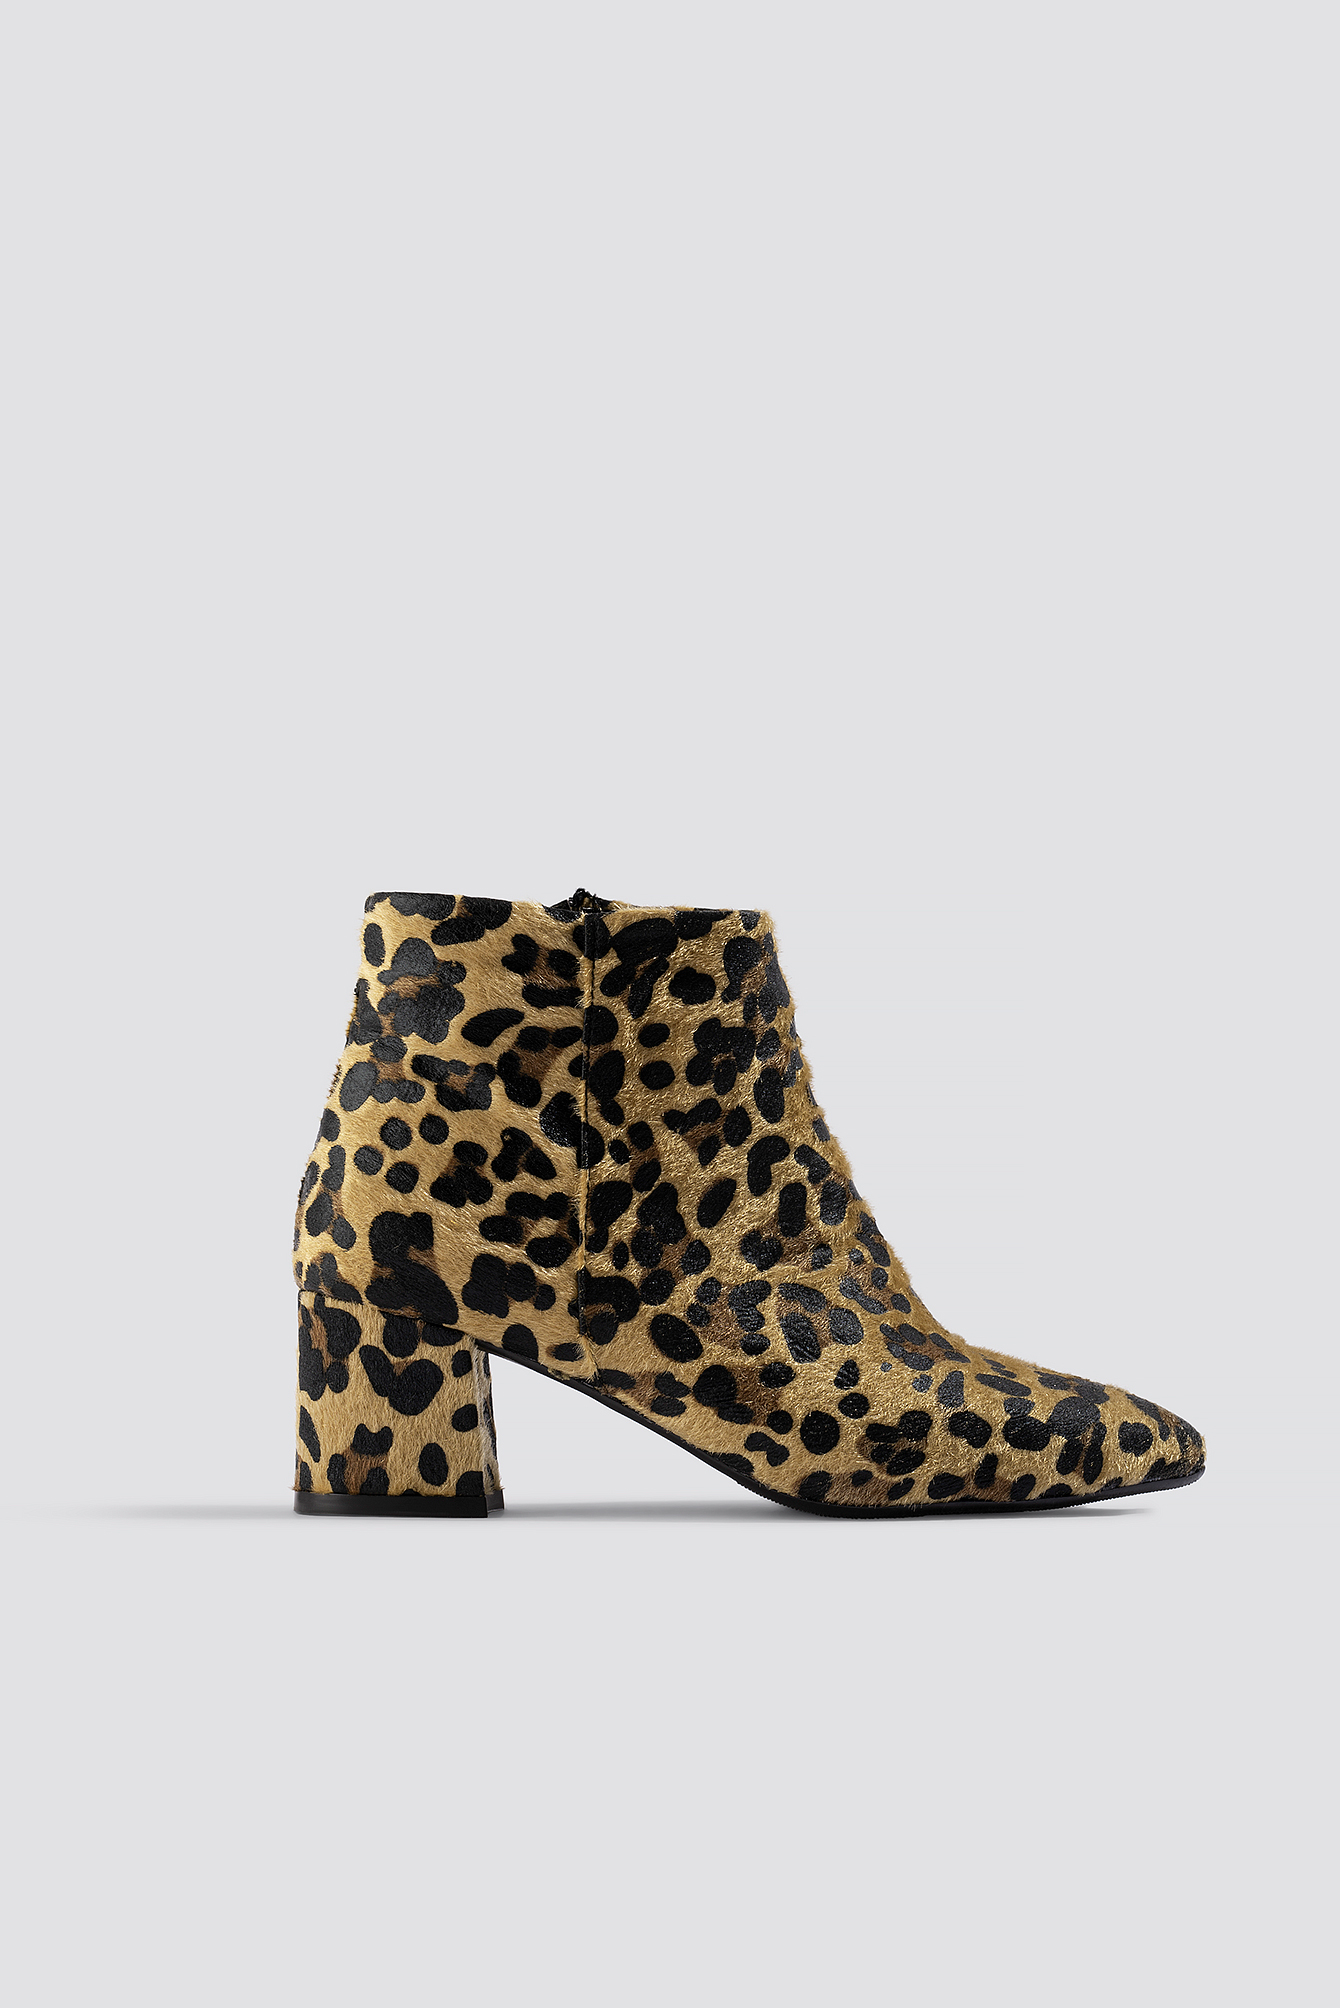 trendyol -  Leo Printed Boots - Brown,Beige,Multicolor